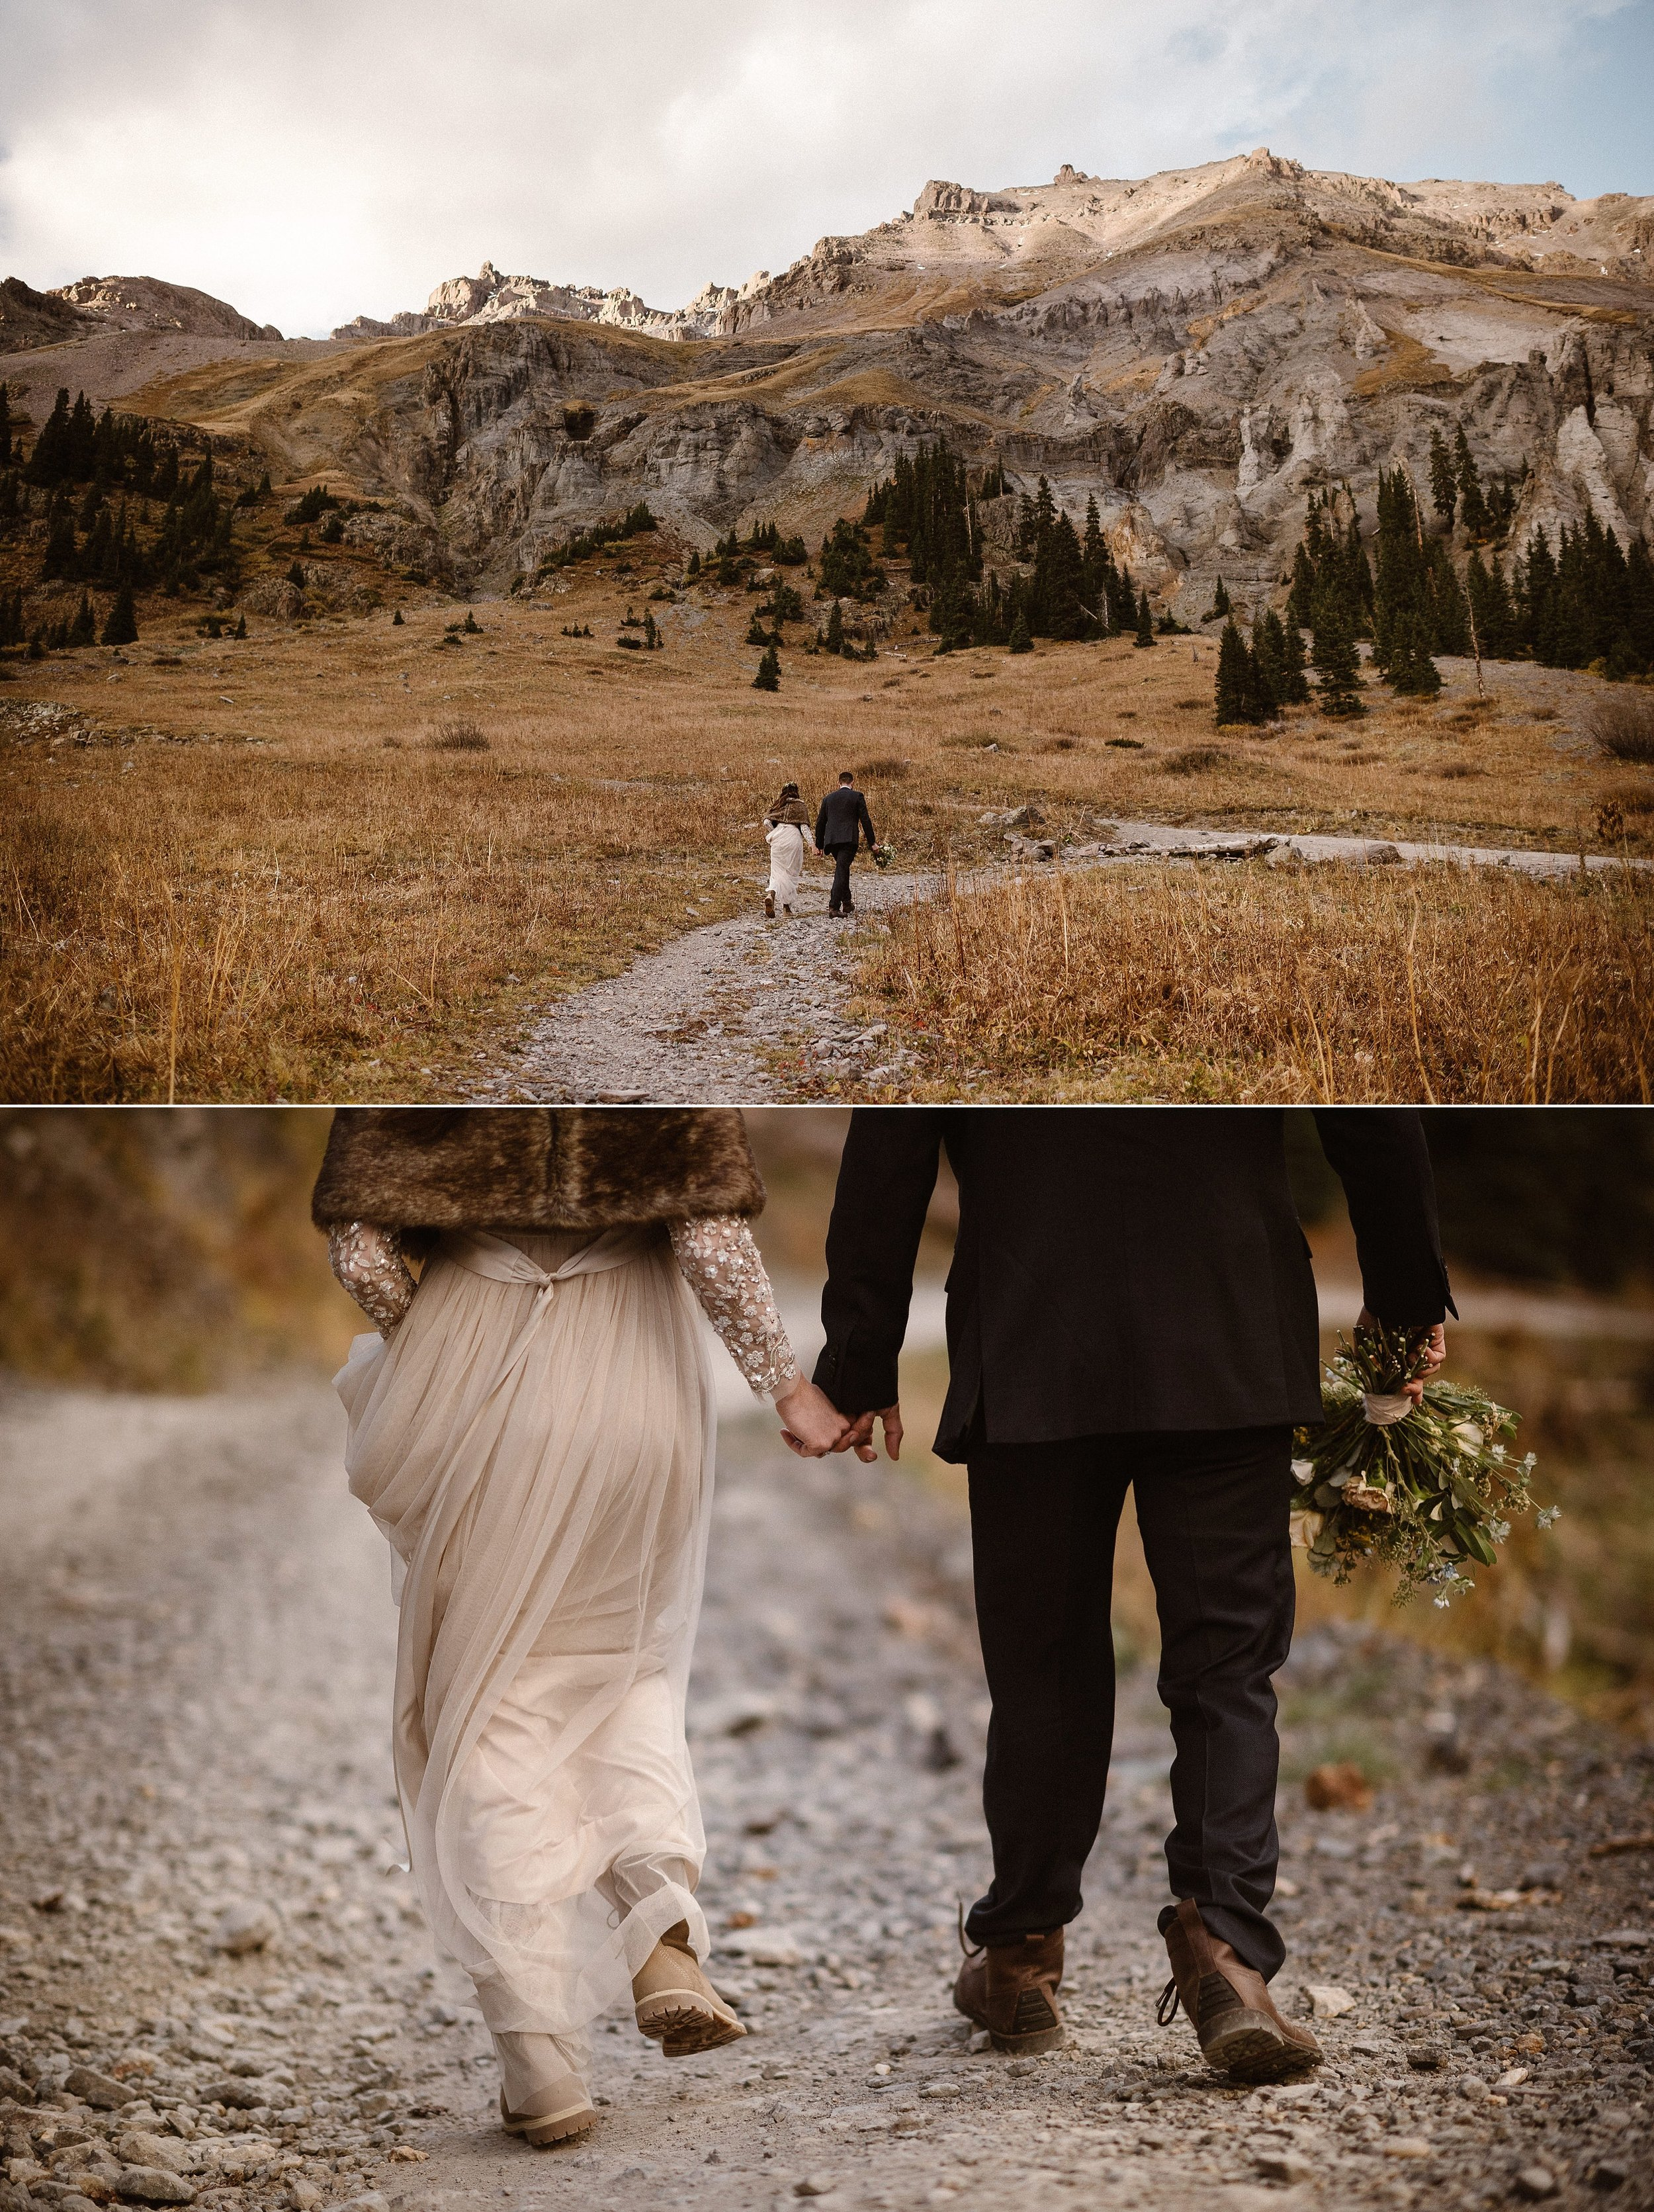 The sun lit up the autumn golds and yellows of the mountains near Ouray, Colorado where Jen and Dan said their vows in private with only their intimate elopement photographer there to capture each emotional moment of their ceremony.